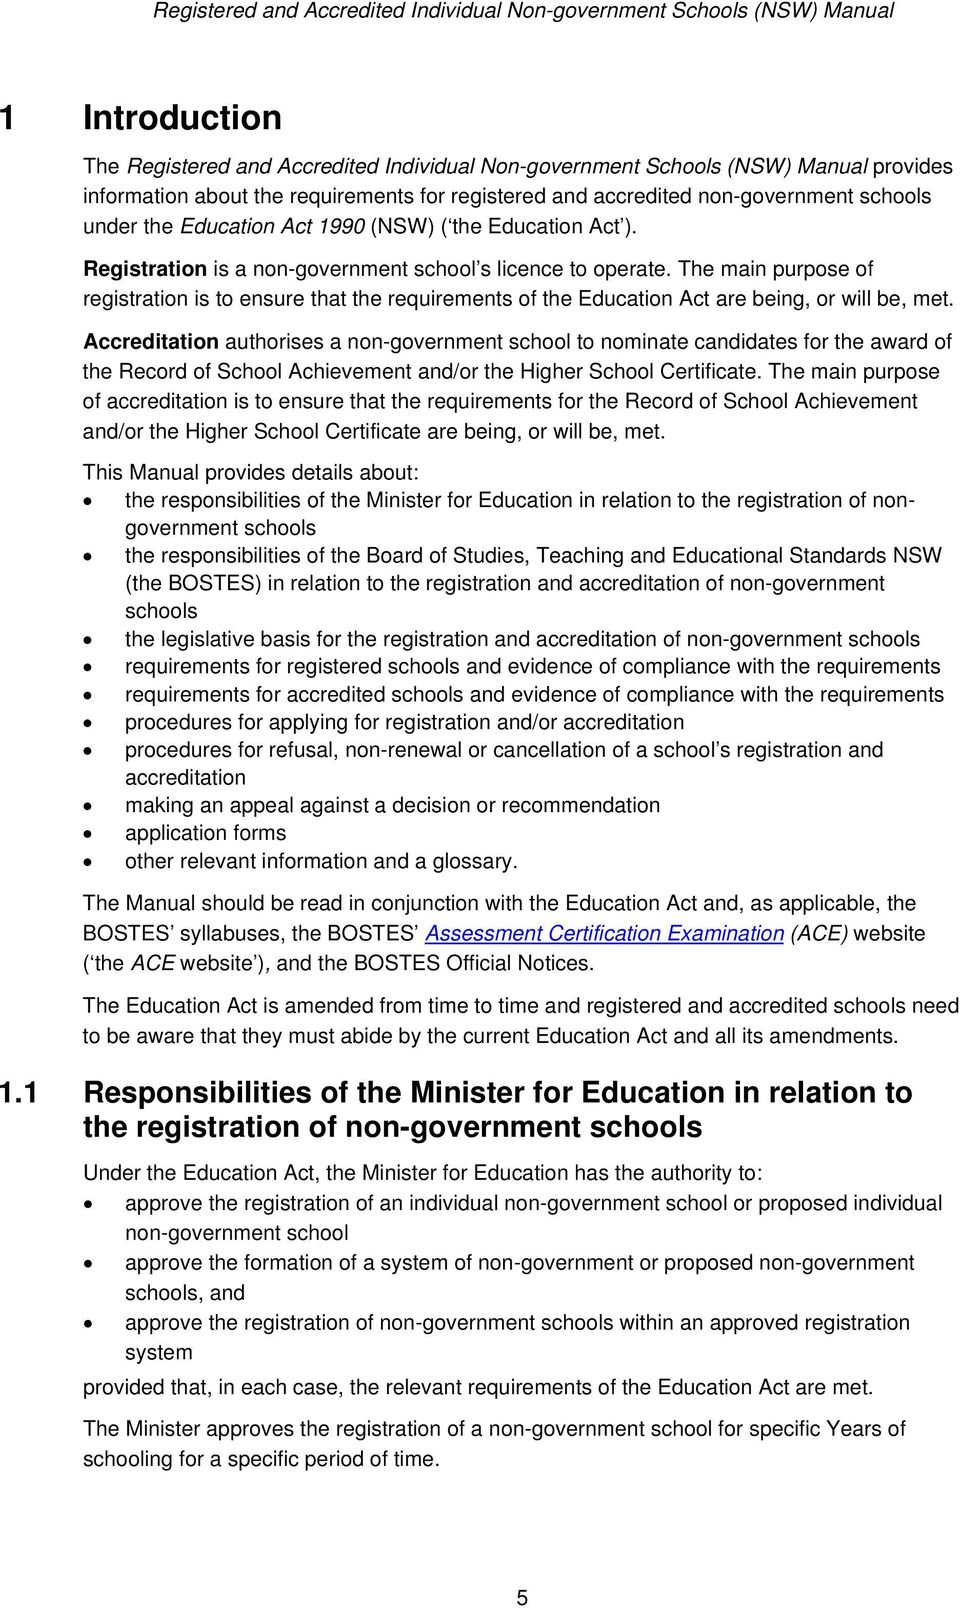 The main purpose of registration is to ensure that the requirements of the Education Act are being, or will be, met.